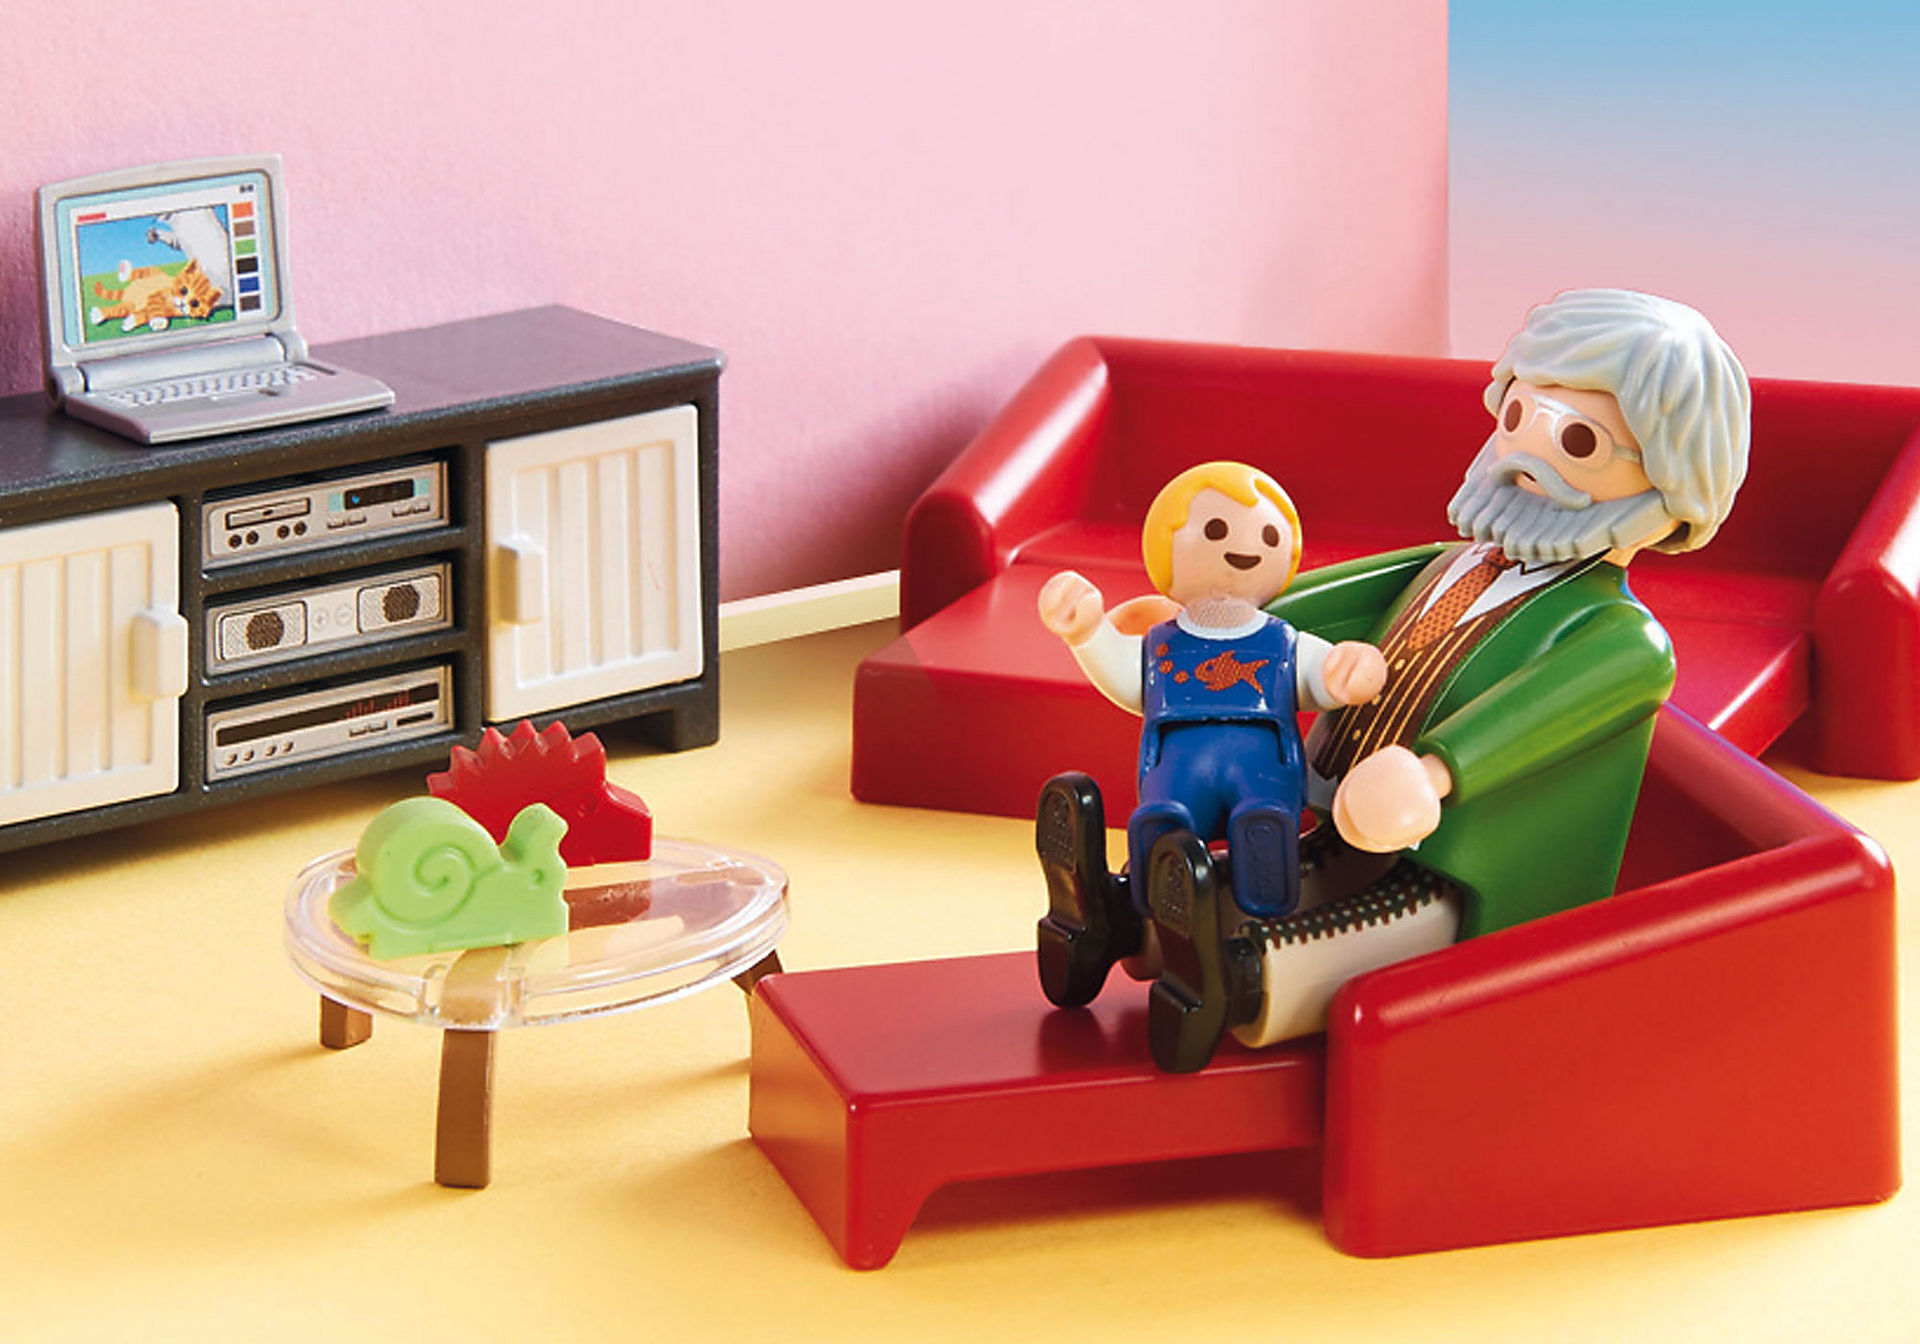 http://media.playmobil.com/i/playmobil/70207_product_extra1/Gemütliches Wohnzimmer